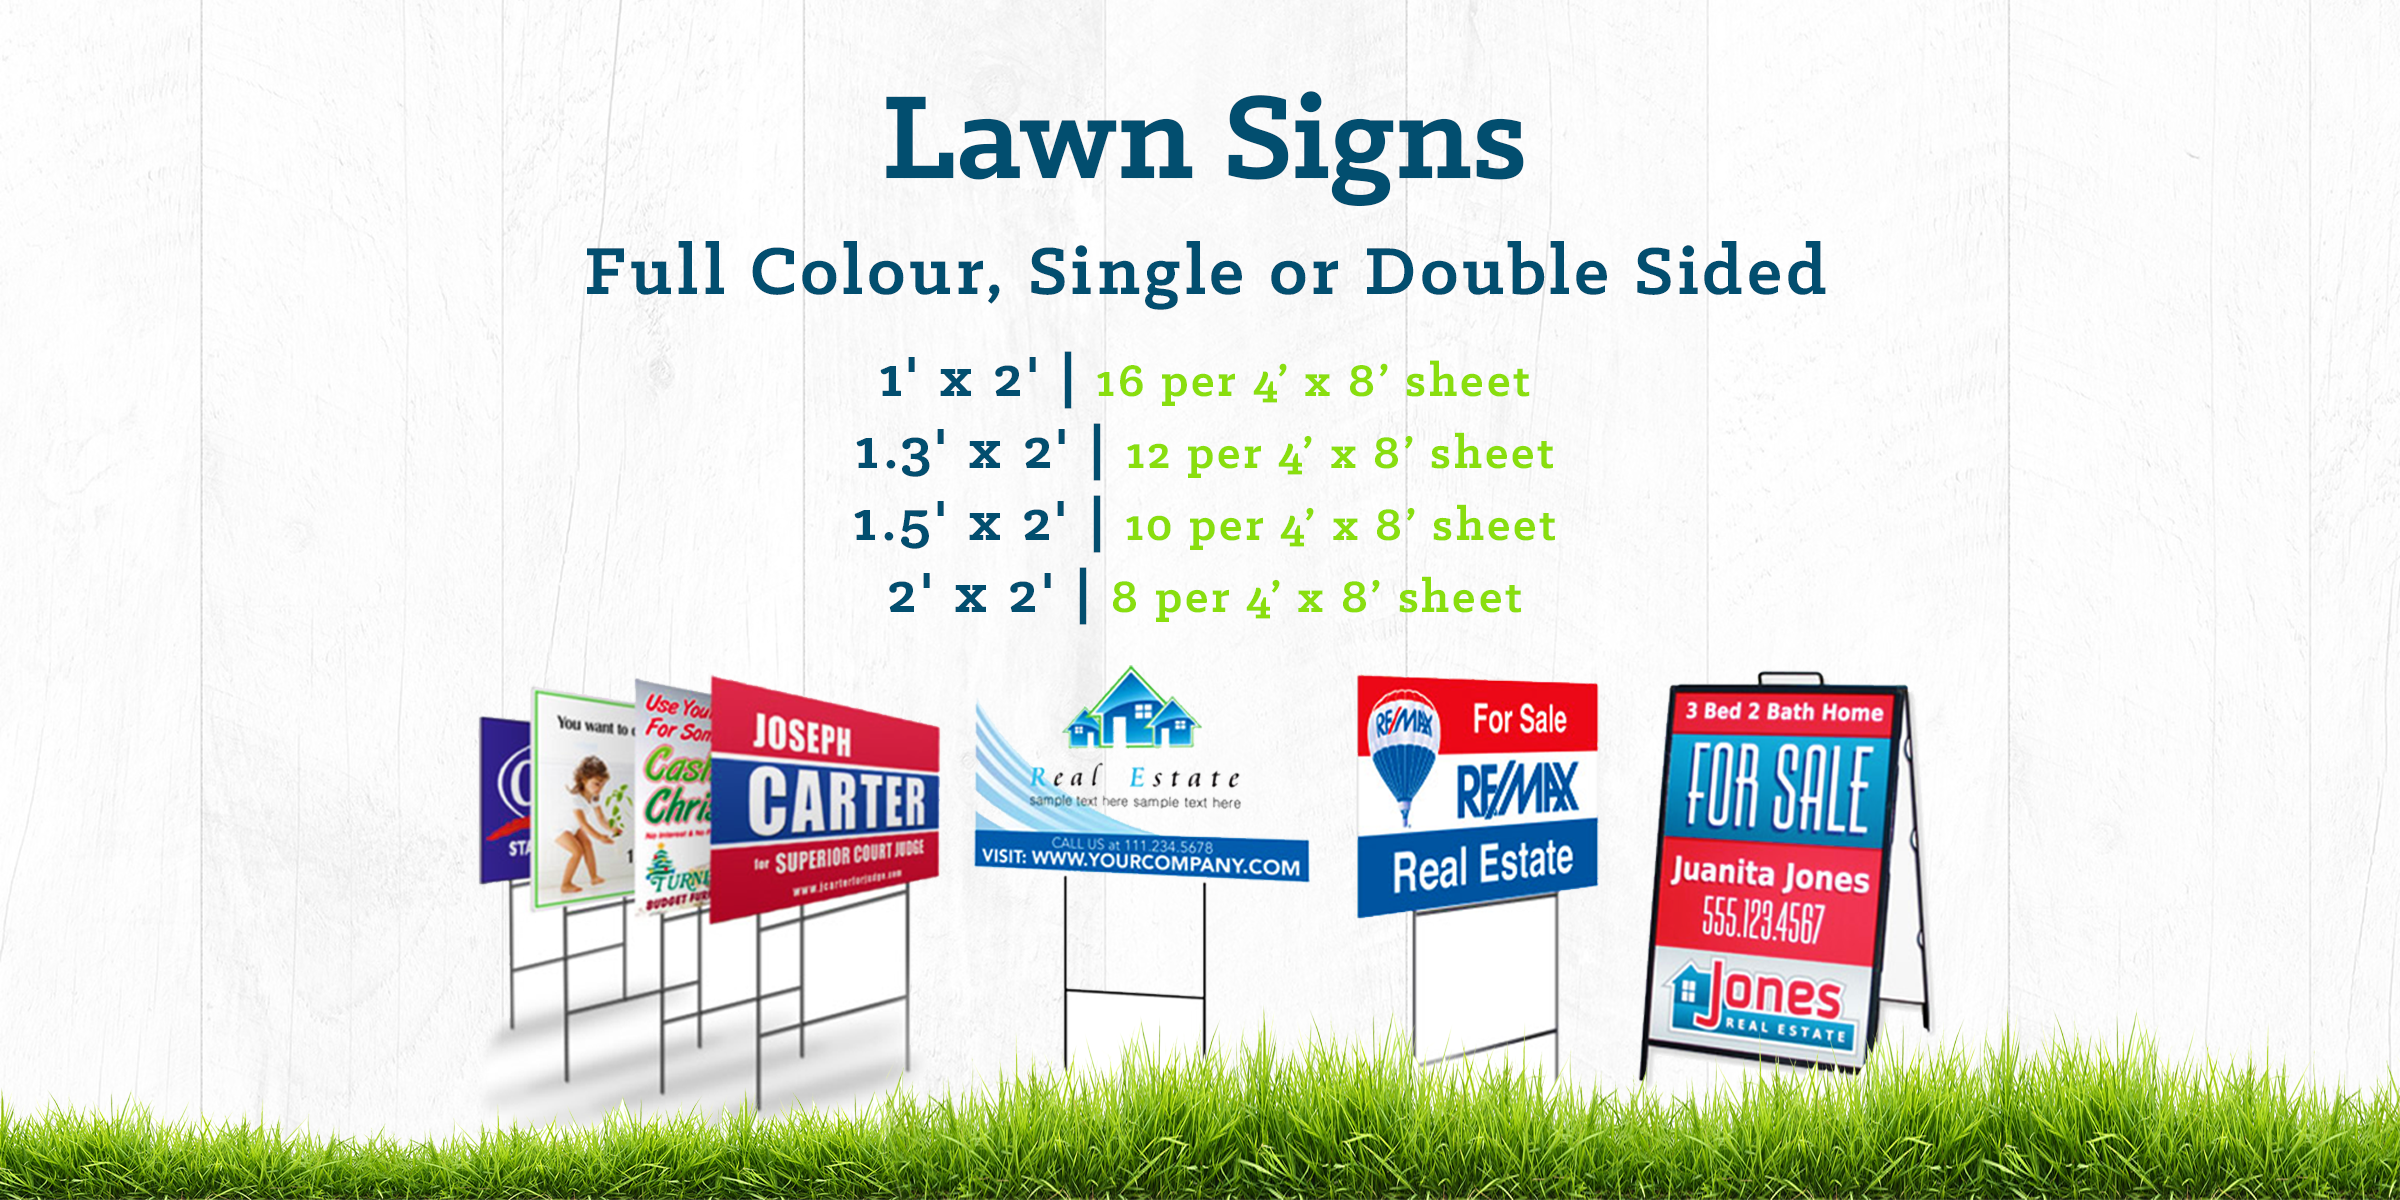 SIGNAGE LAWN SIGNS